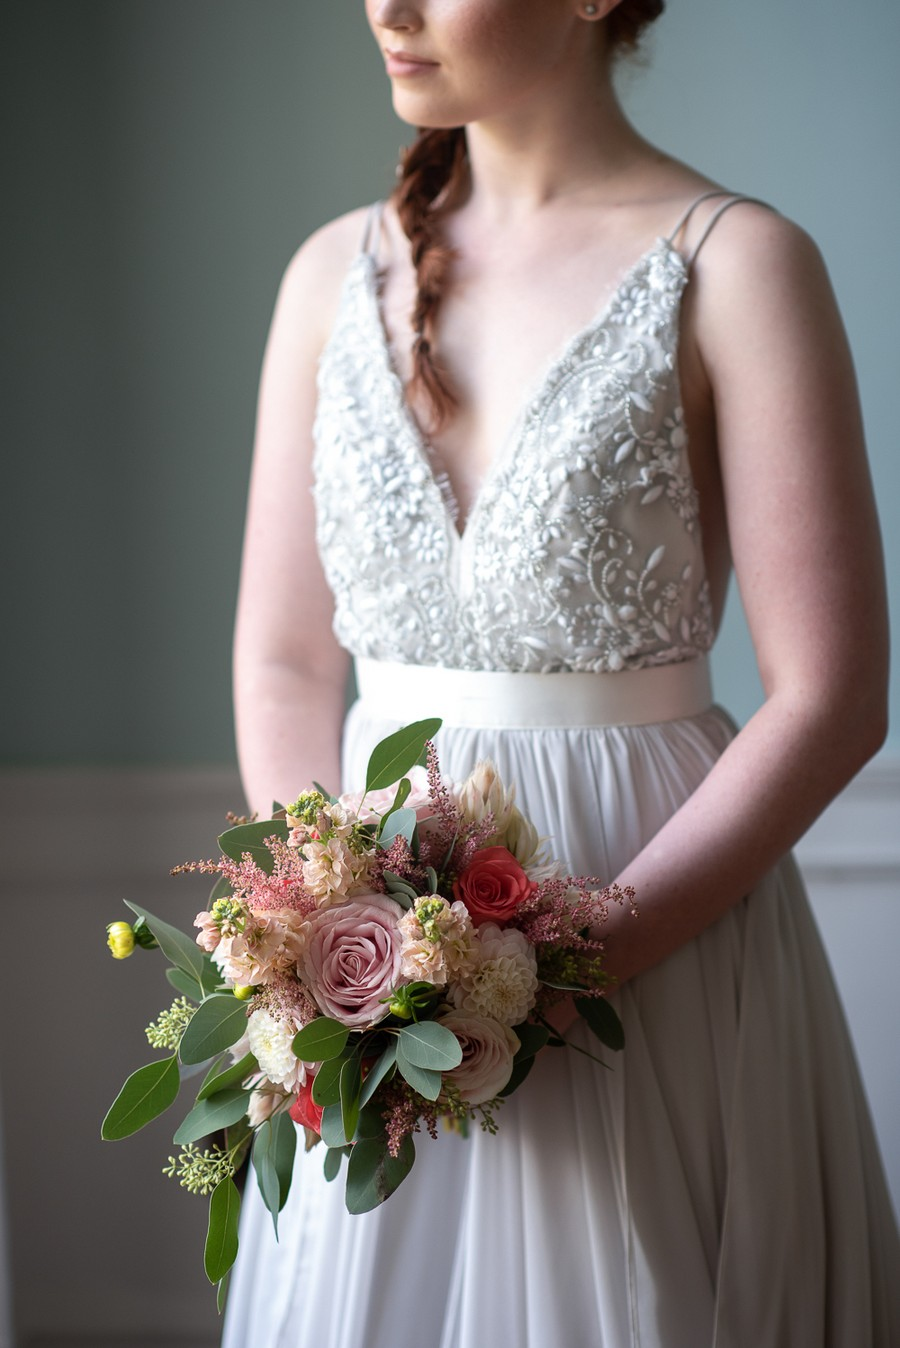 Beautiful fairytale wedding ideas from Clissold Park on English Wedding. Image credit Eva Tarnok Photography (8)